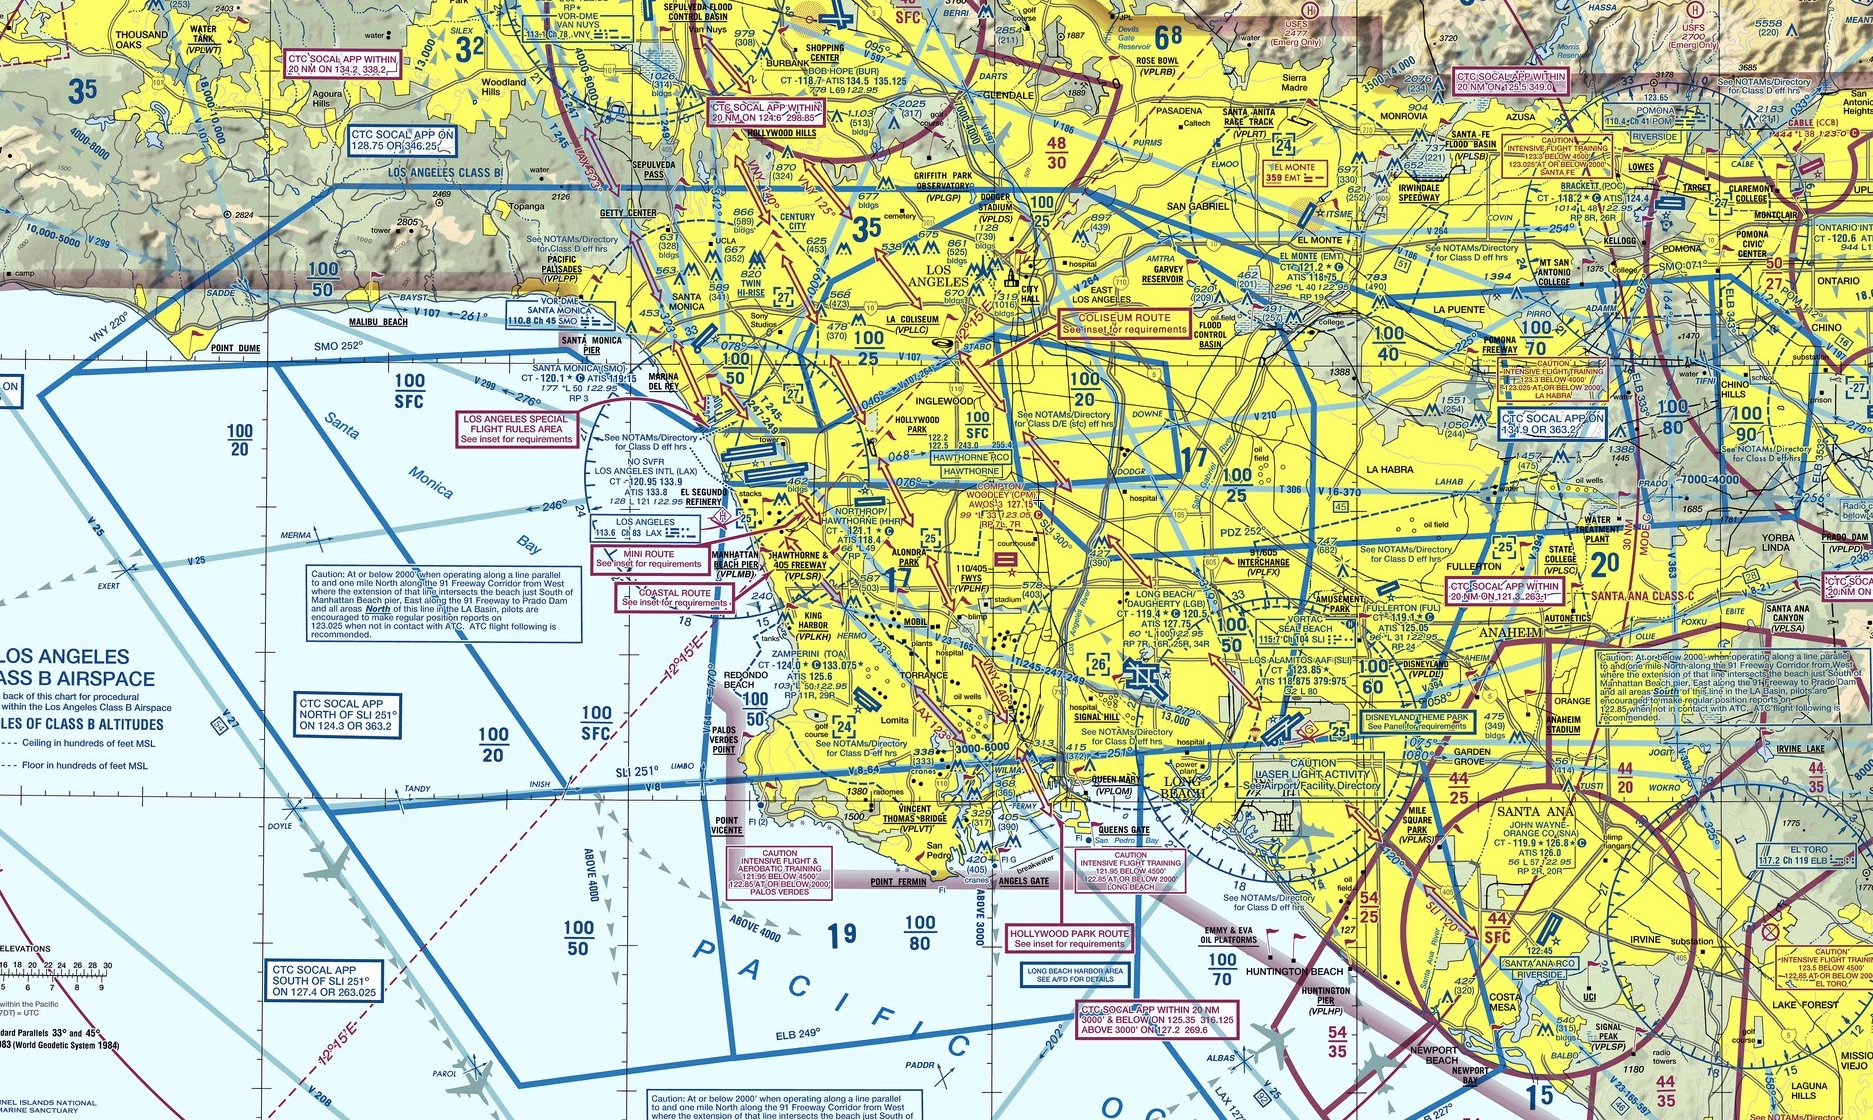 SkyVector__Flight_Planning___Aeronautical_Charts 4